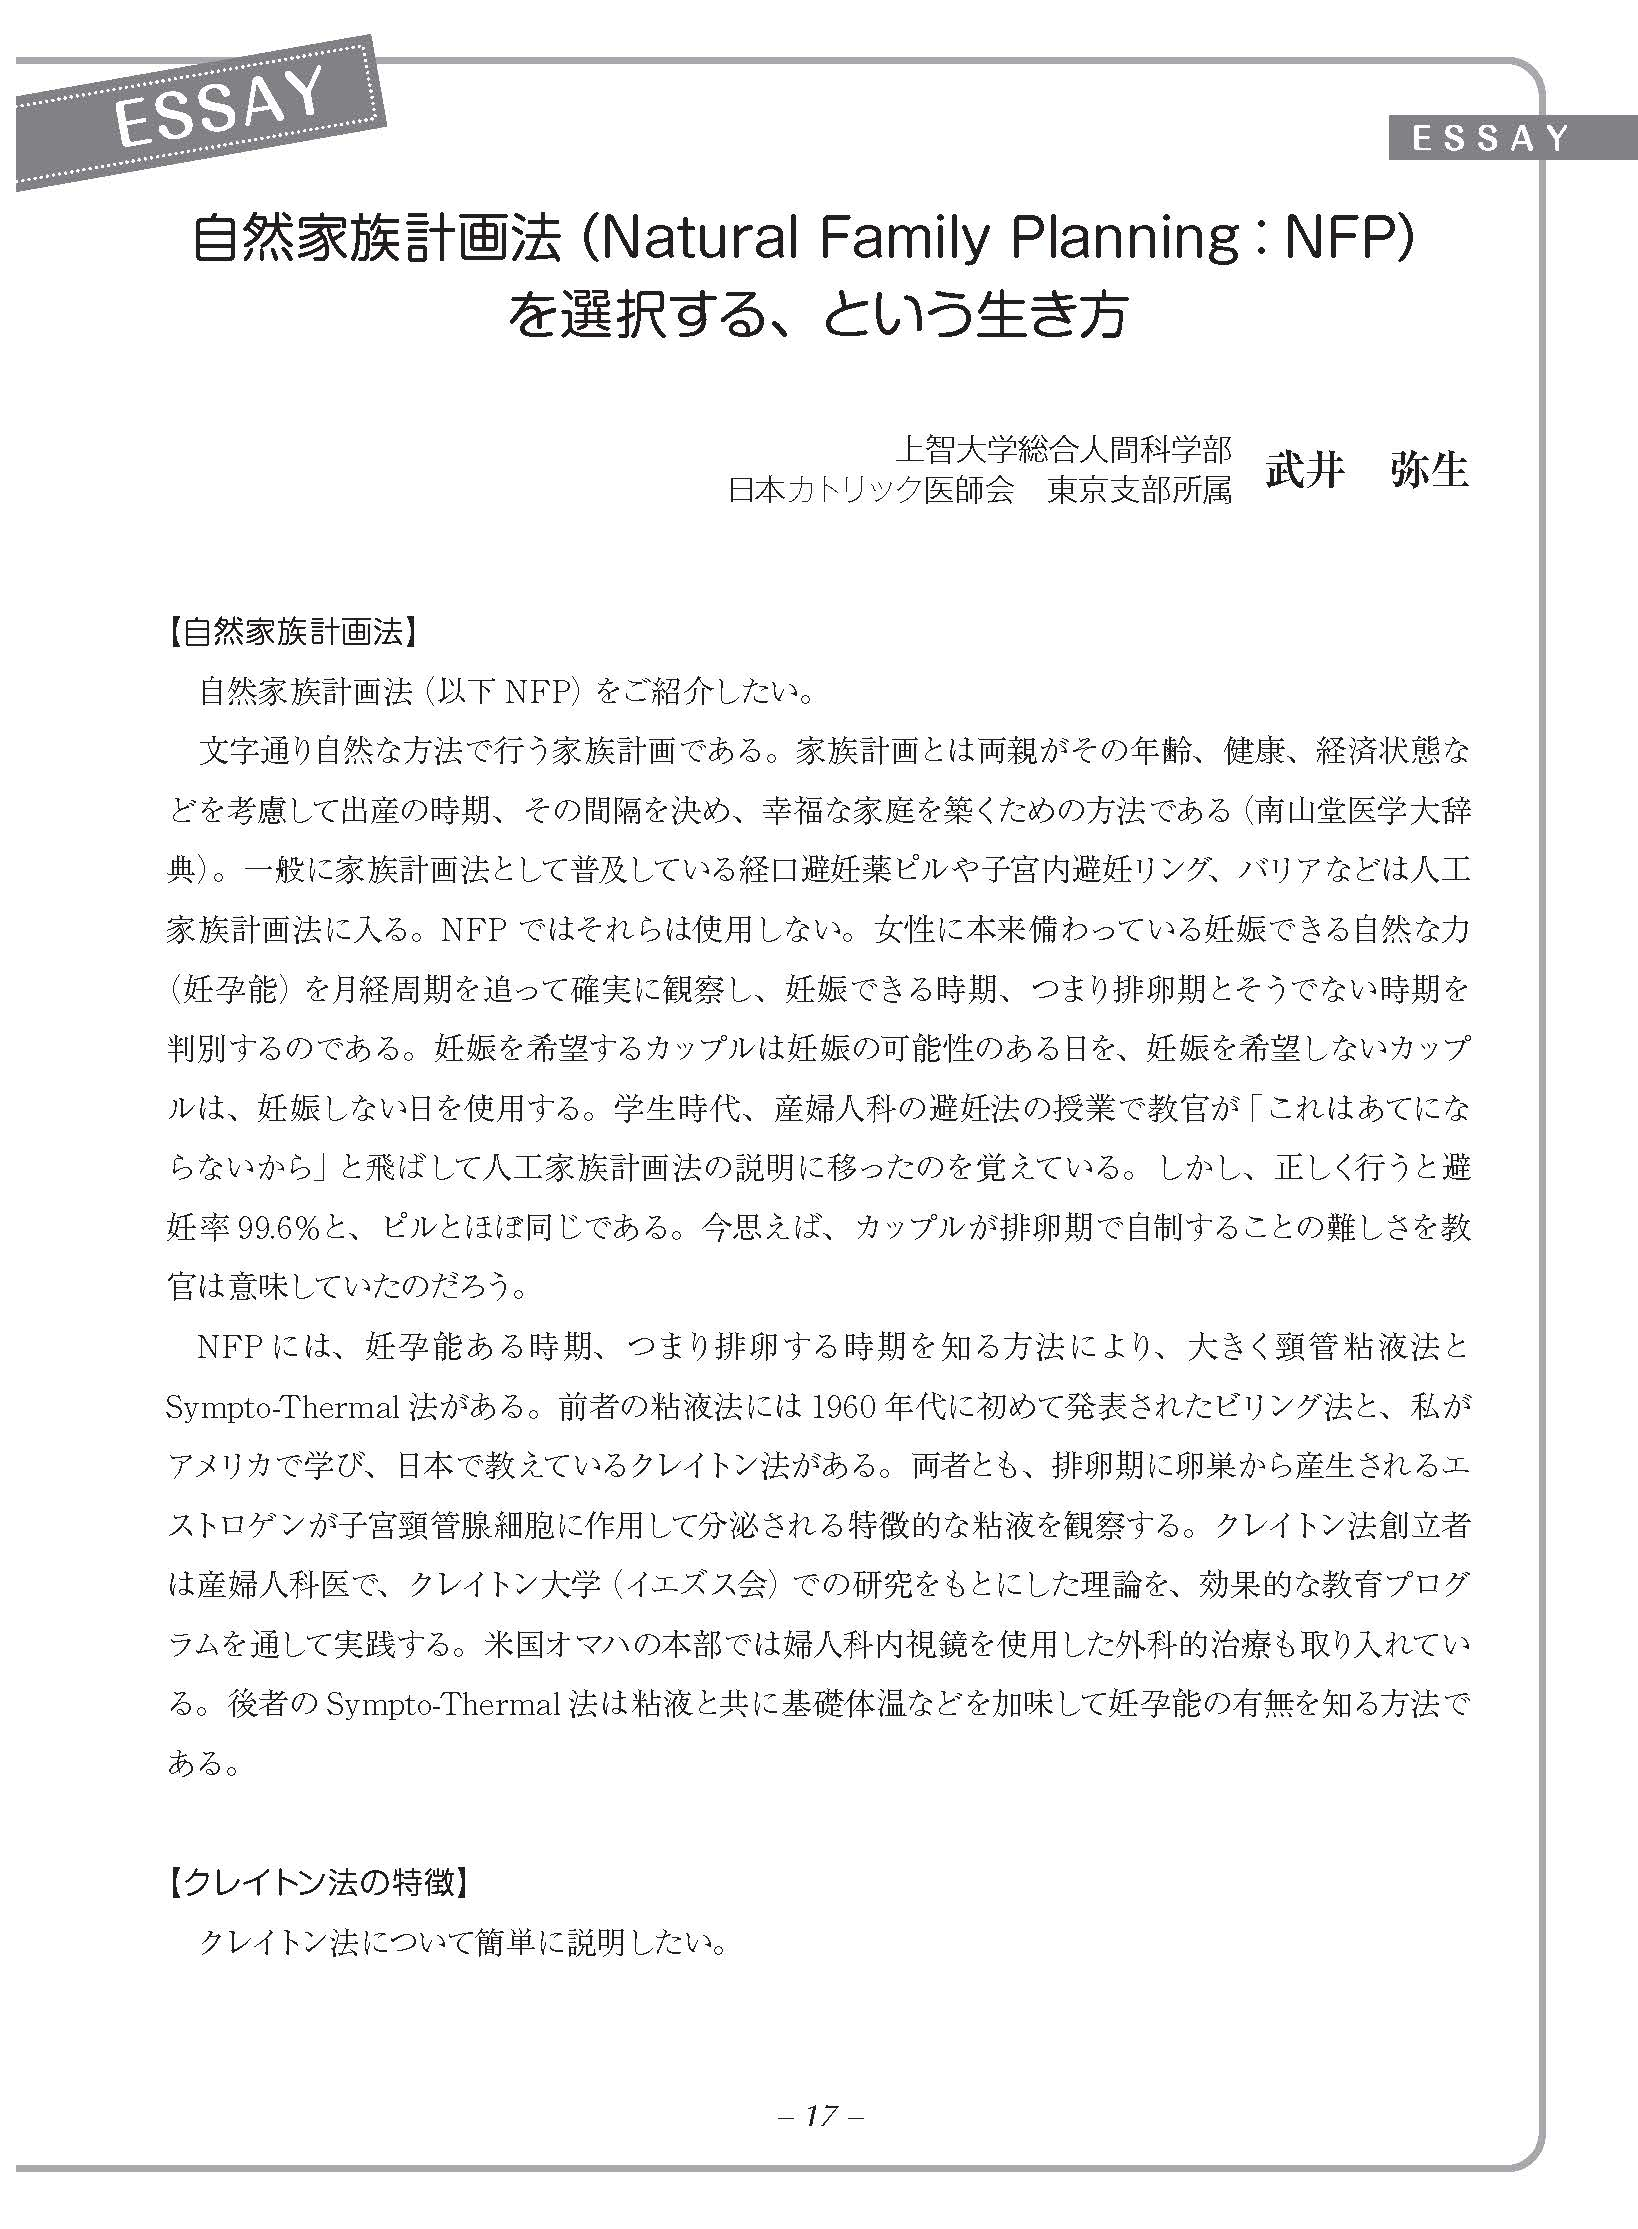 takei_essay_NFP_Page_1